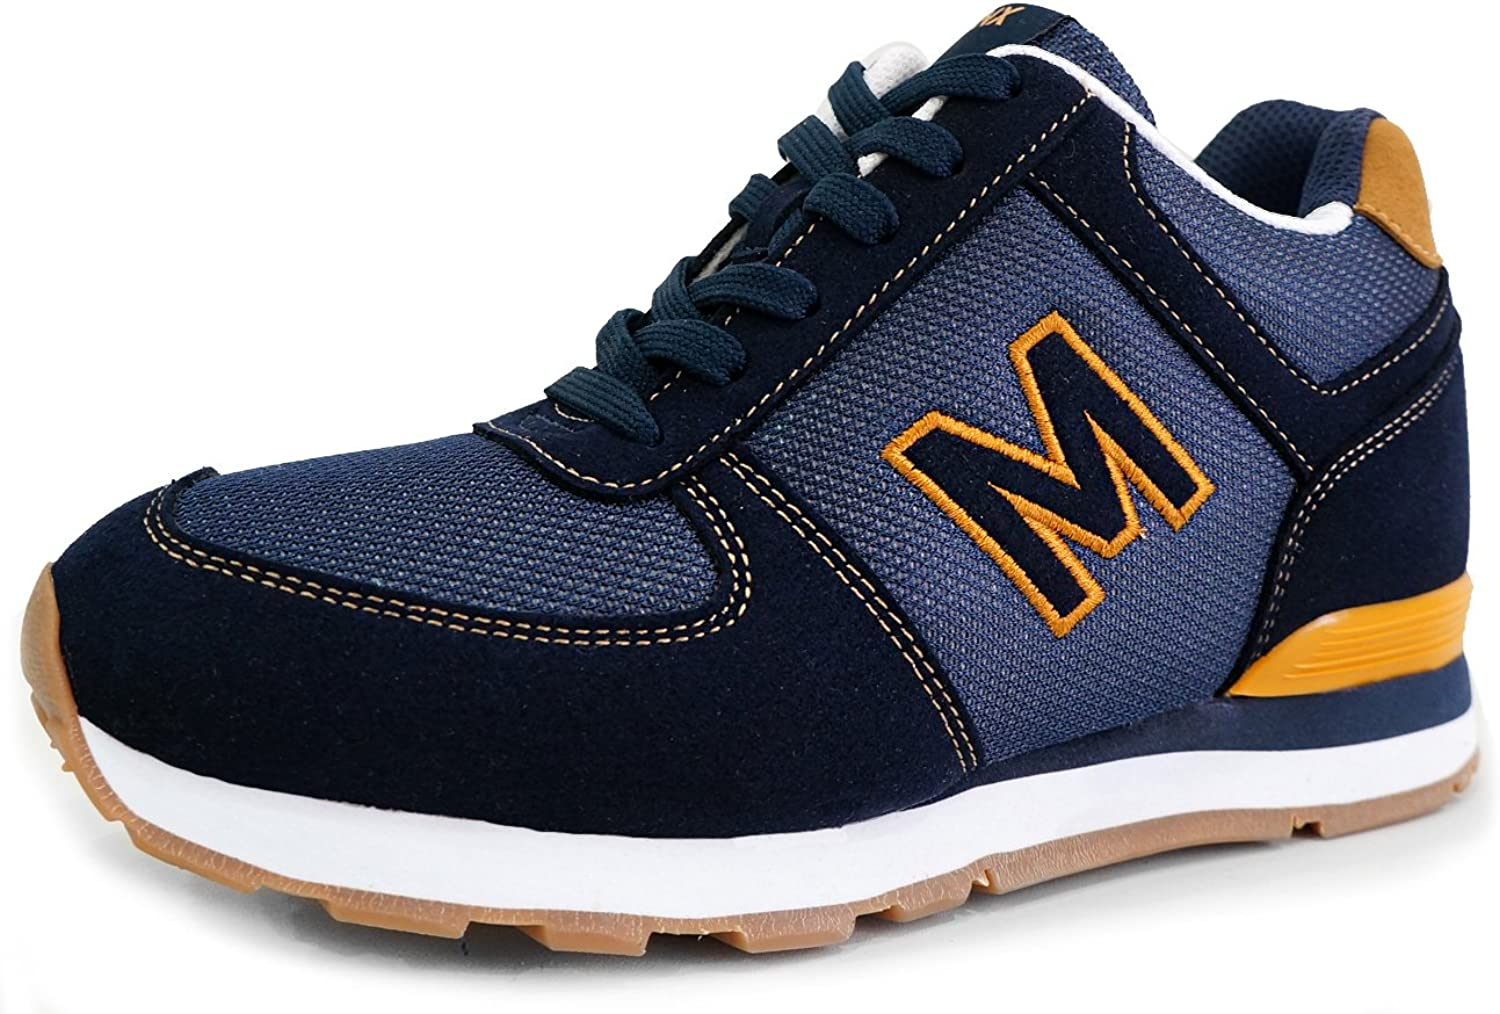 MNX15 Women's Elevator shoes Height Increase 2.7  Envy Navy